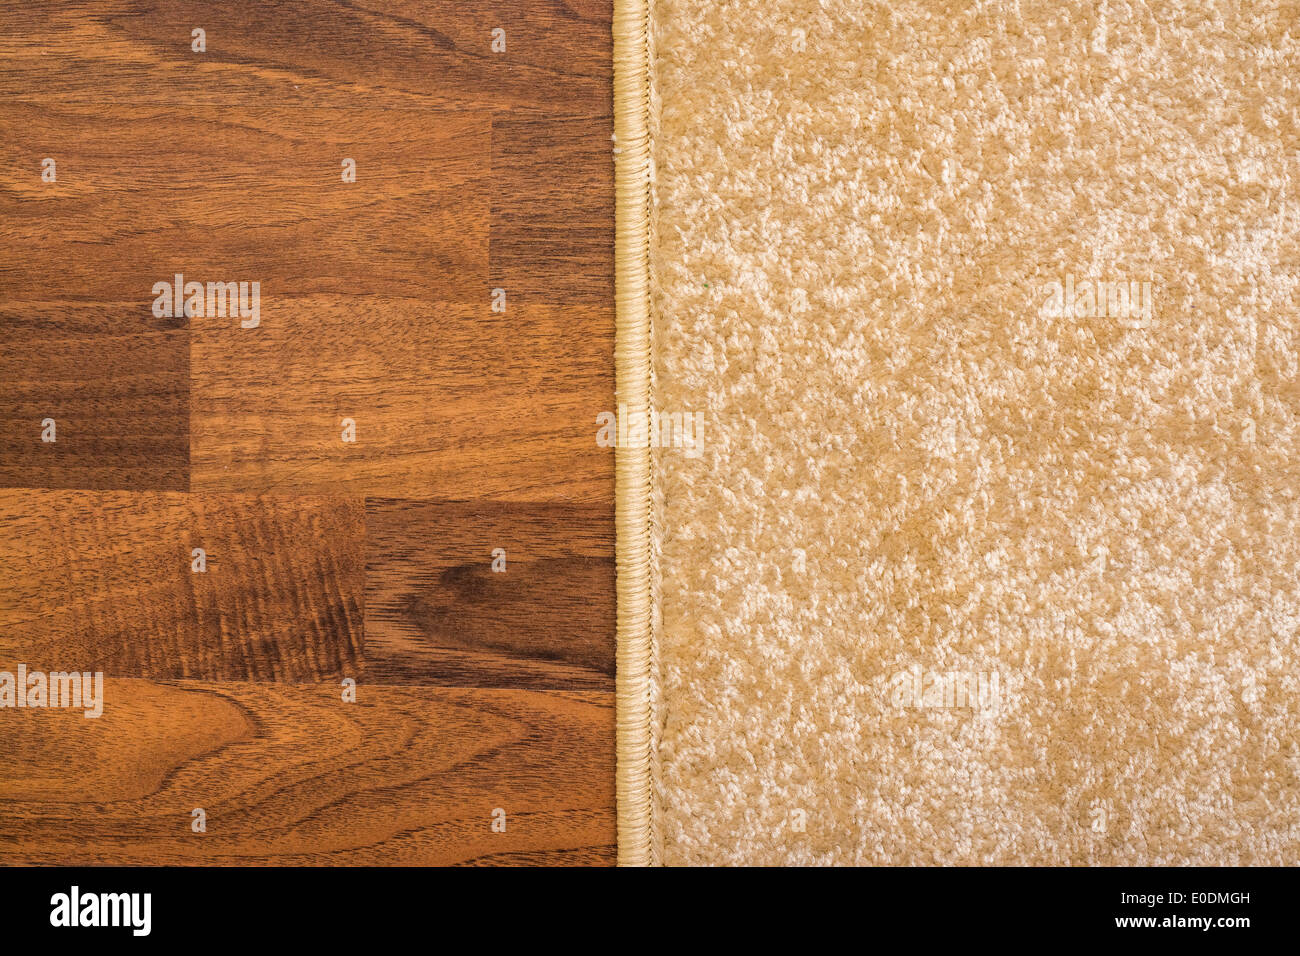 Living Room Carpet On Wood Parquet Close Up - Stock Image